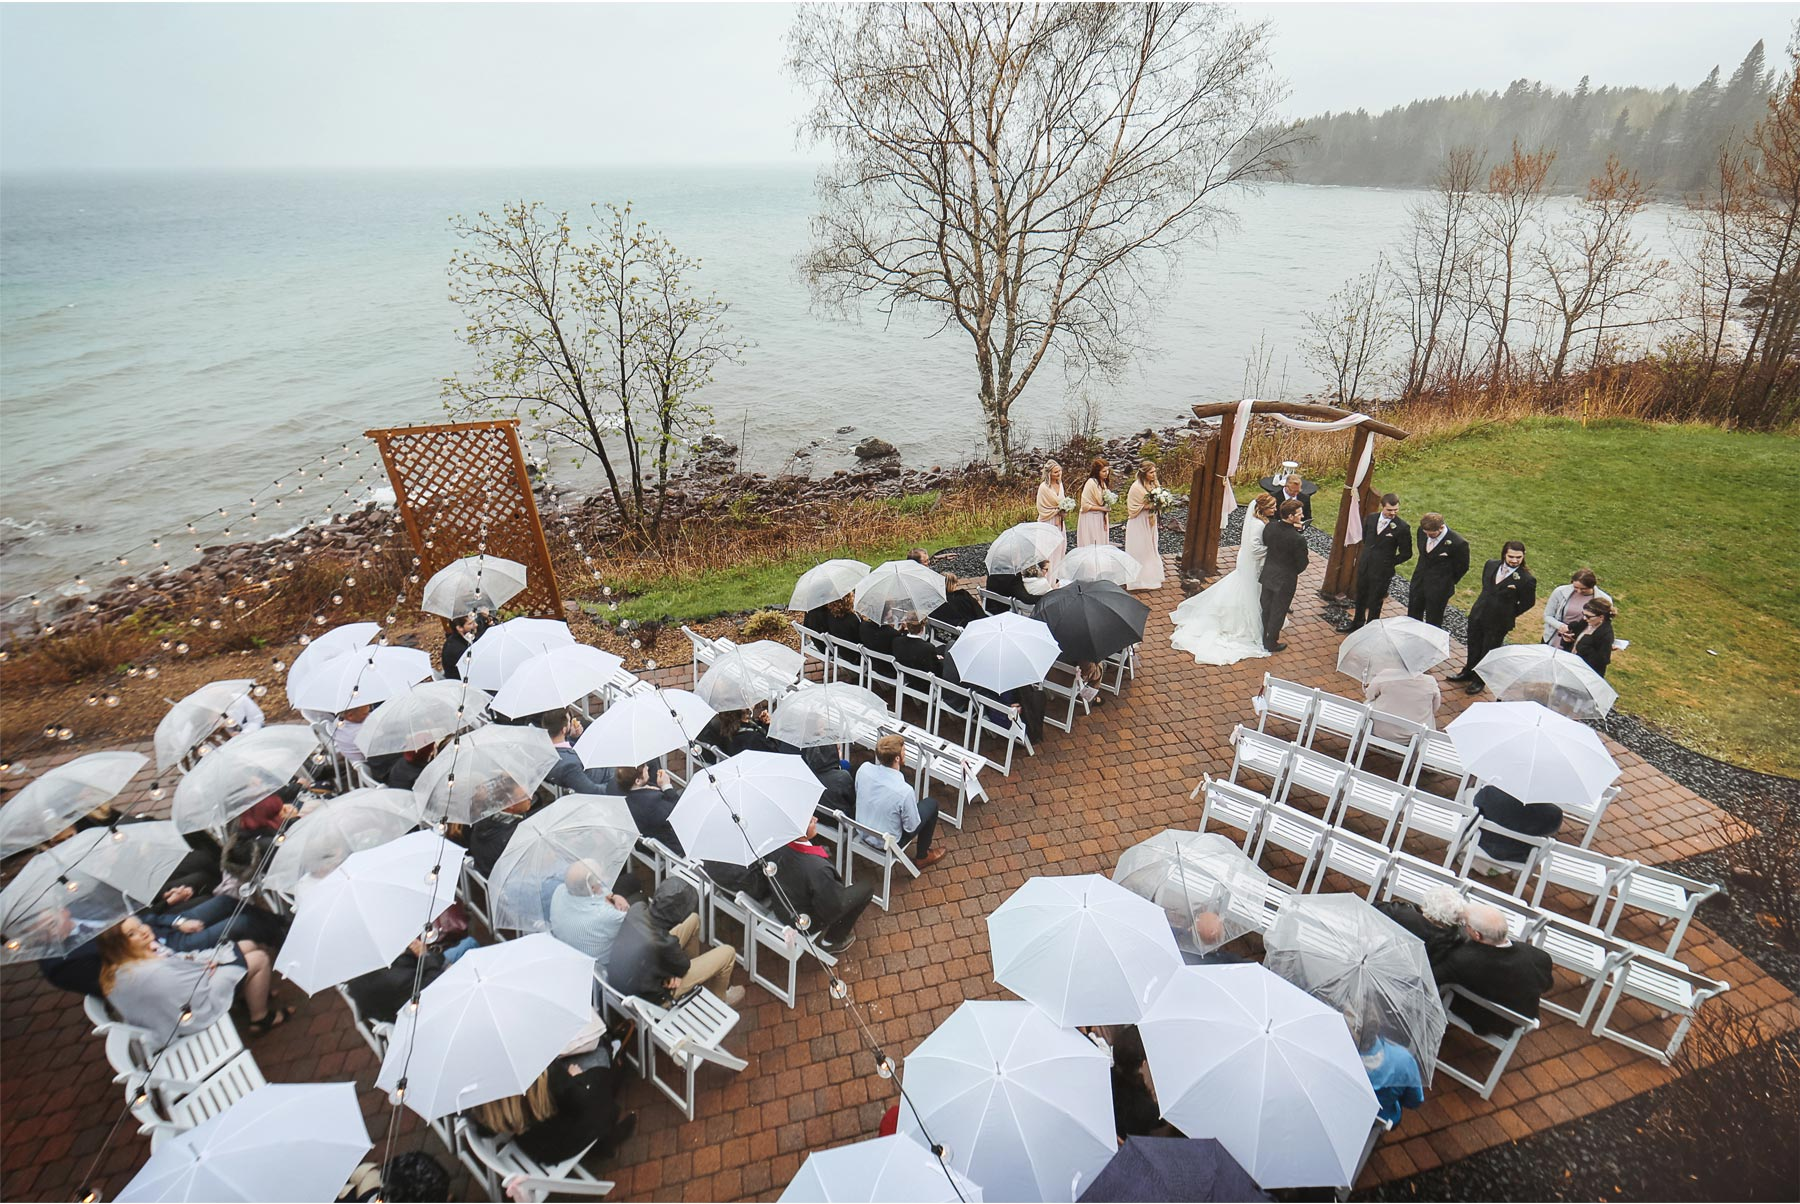 15-Minnesota-Wedding-by-Andrew-Vick-Photography-Grand-Superior-Lodge-Duluth-Two-Harbors-Outdoor-Ceremony-Lake-Superior-Rain-Umbrellas-Veronica-and-Tyler.jpg